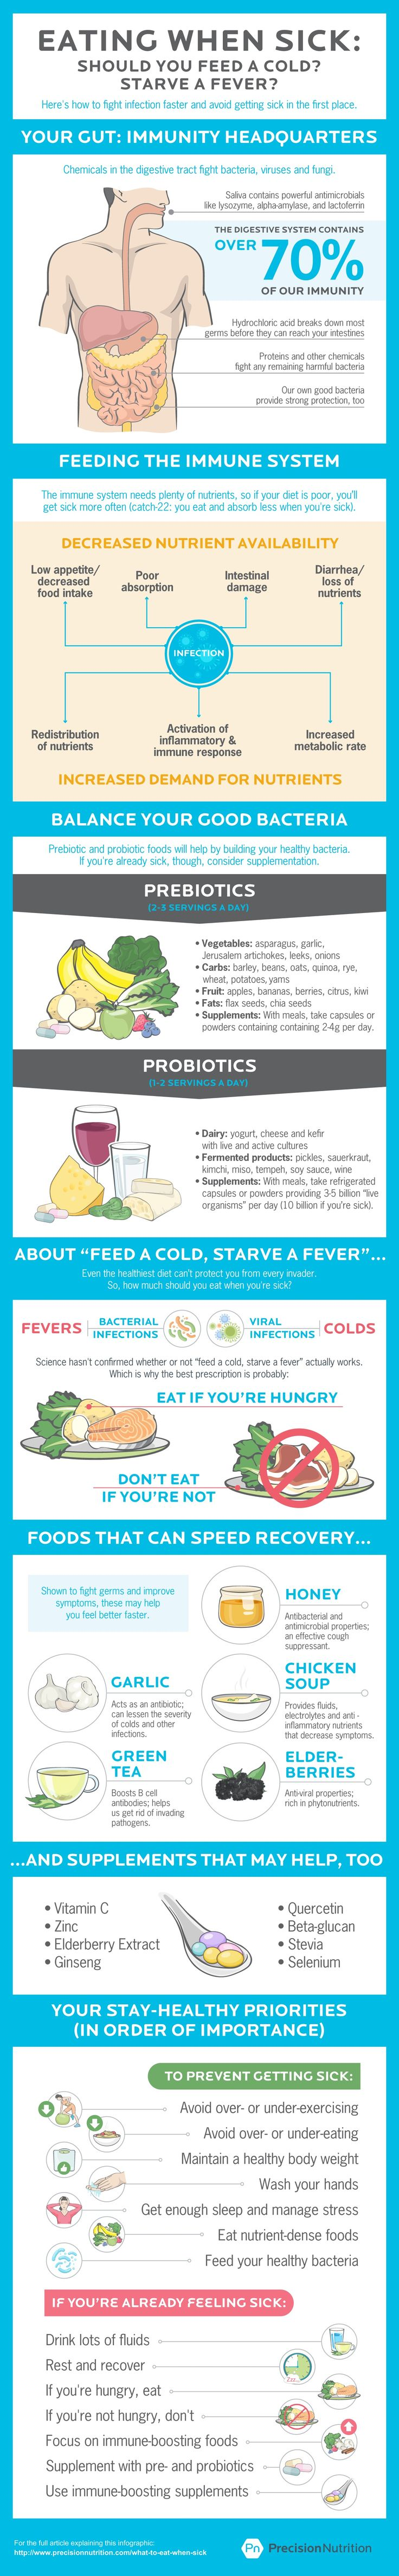 precision nutrition eating when sick image What should you eat when sick? [Infographic] Foods that help you fight bugs faster (and avoid catching them at all).